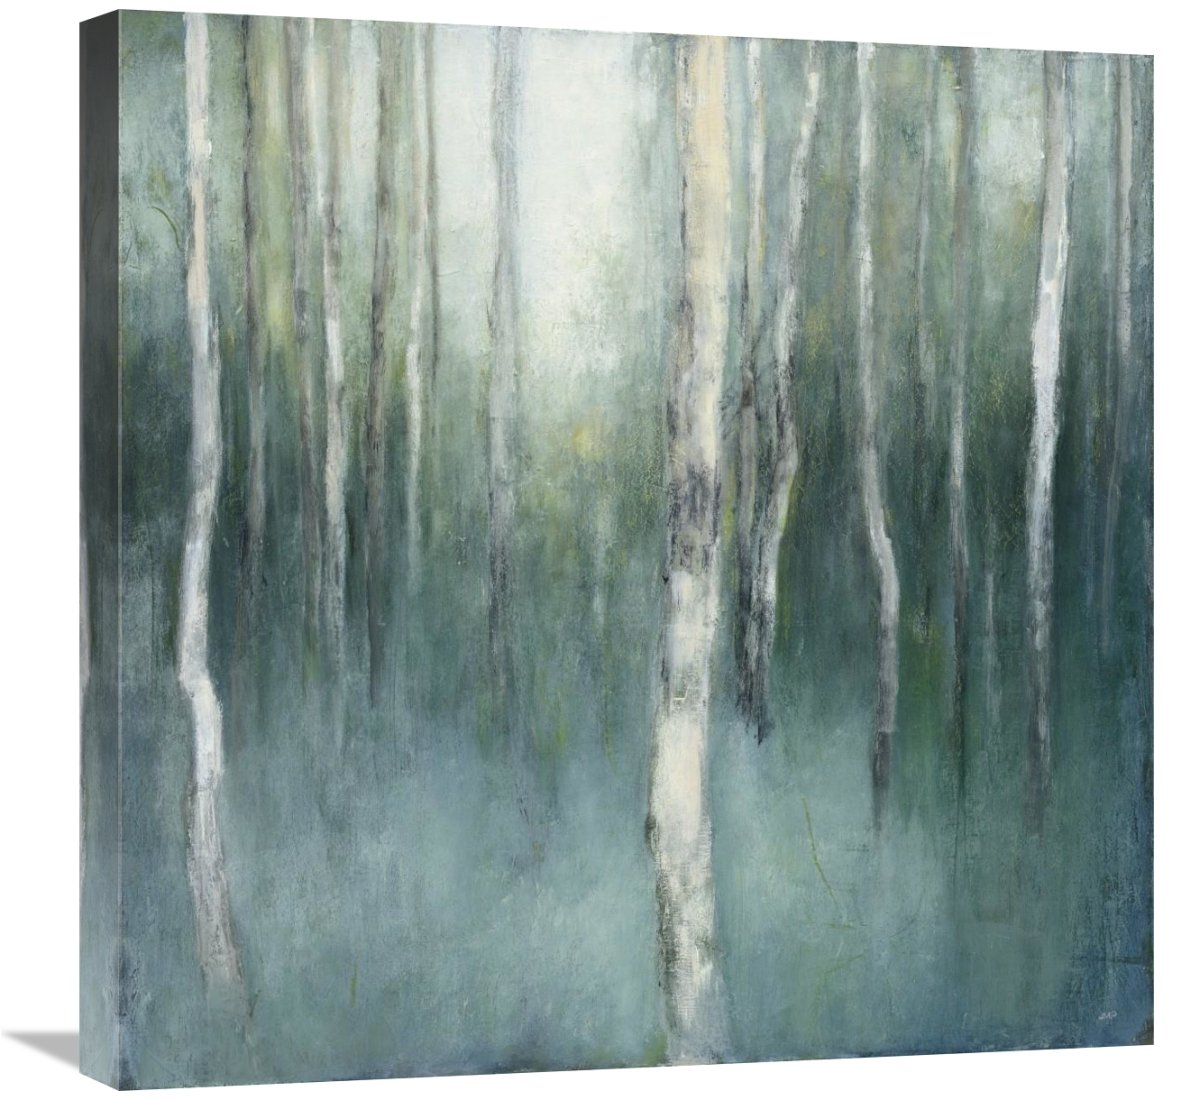 Global Gallery Julia Purinton, Forest Dream\' Giclee Stretched Canvas Artwork 24 x 24